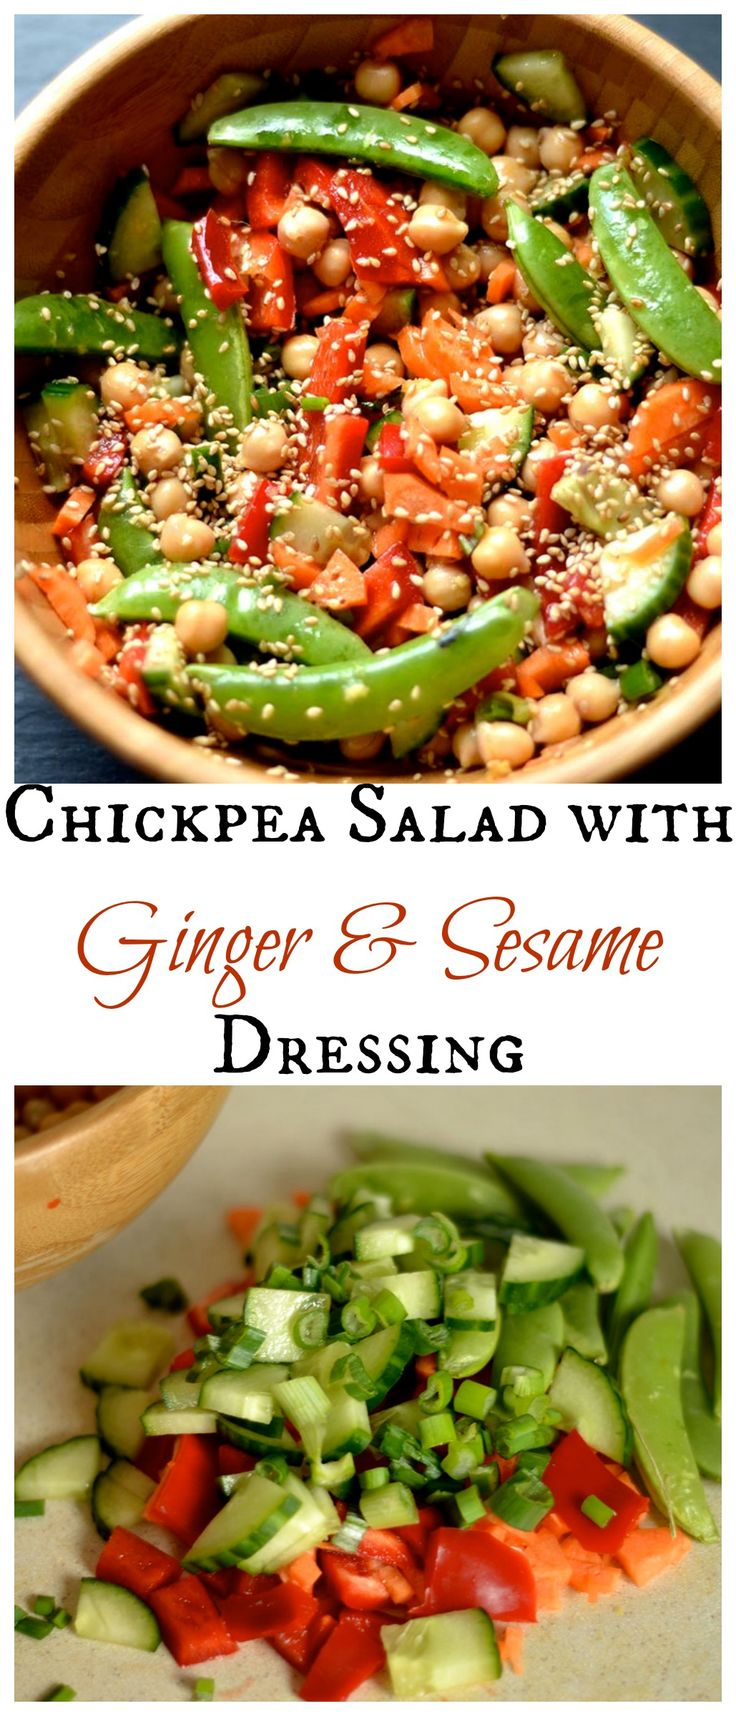 Chickpea Salad with Ginger and Sesame Dressing